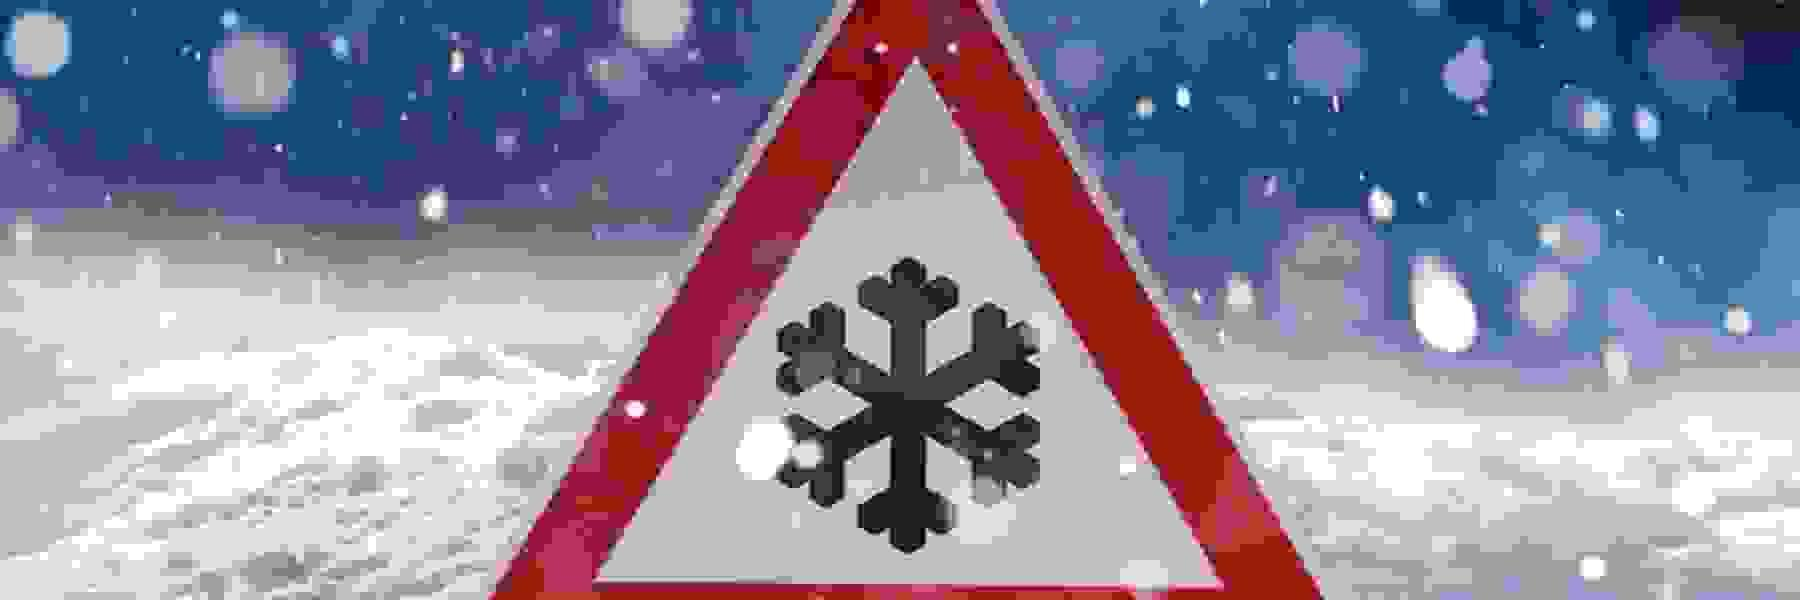 Advice for safe driving on snow and ice